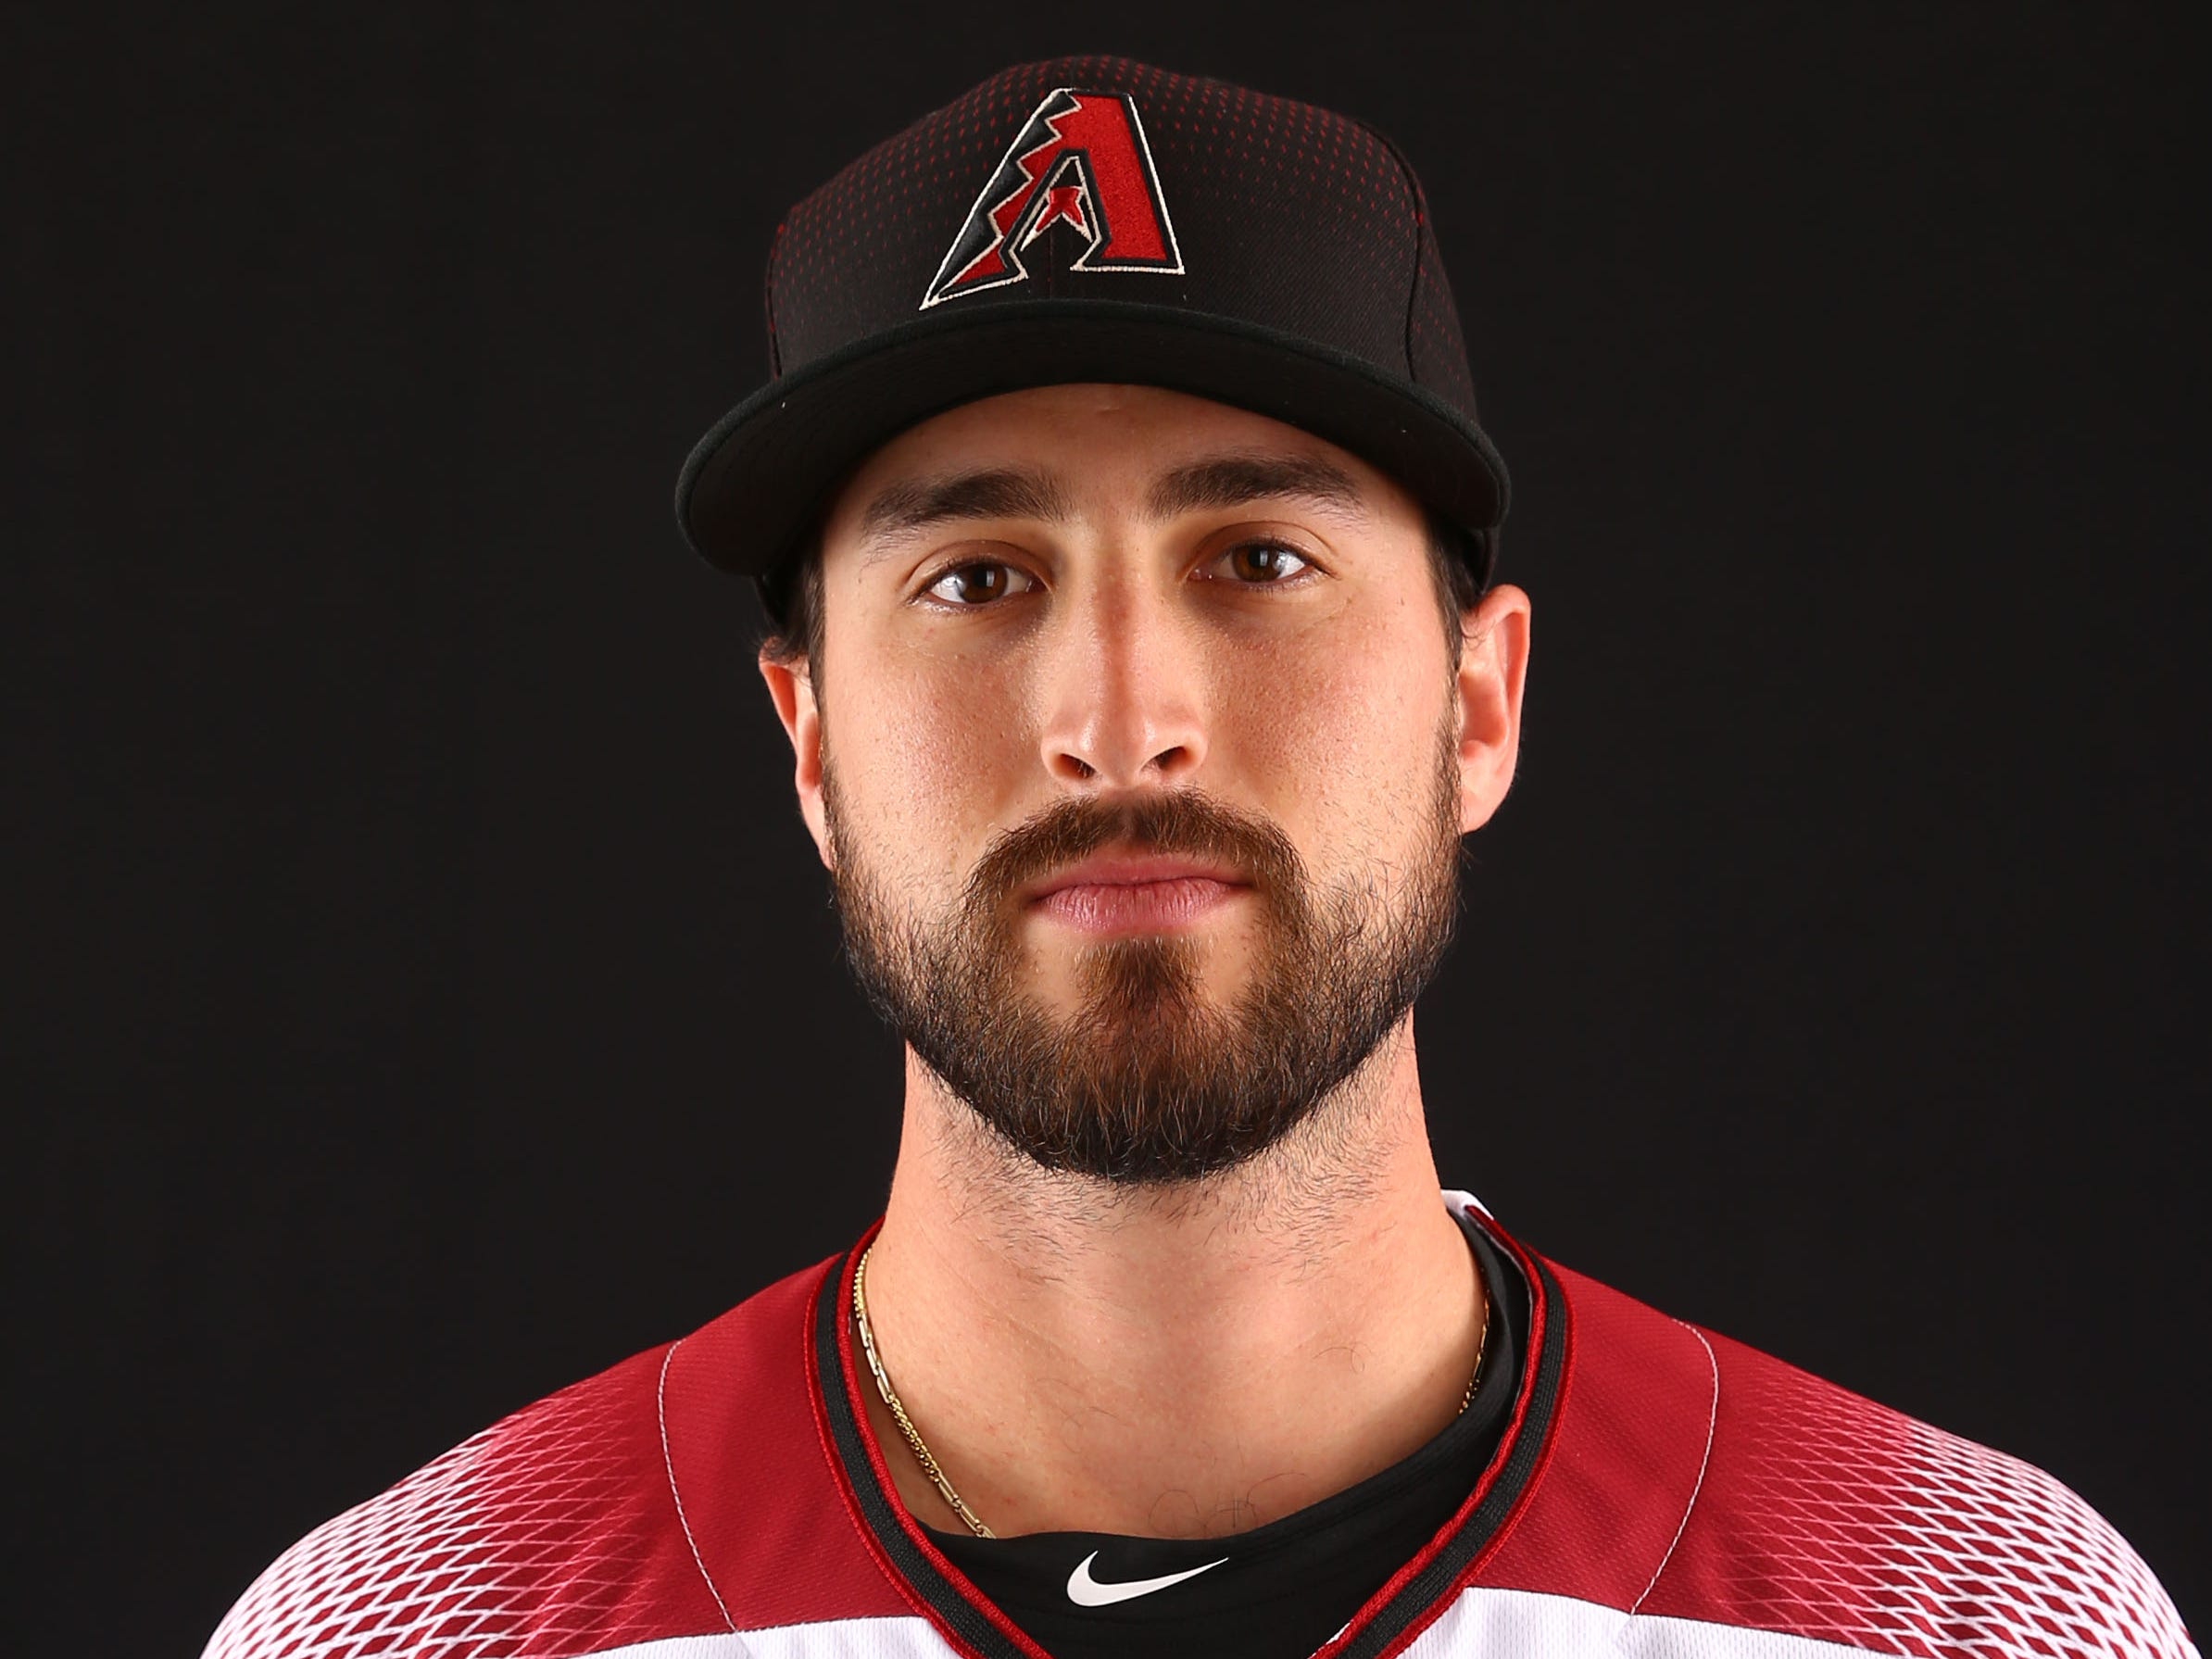 Stefan Crichton of the Arizona Diamondbacks poses for a photo during the annual Spring Training Photo Day on Feb. 20 at Salt River Fields in Scottsdale, Ariz.